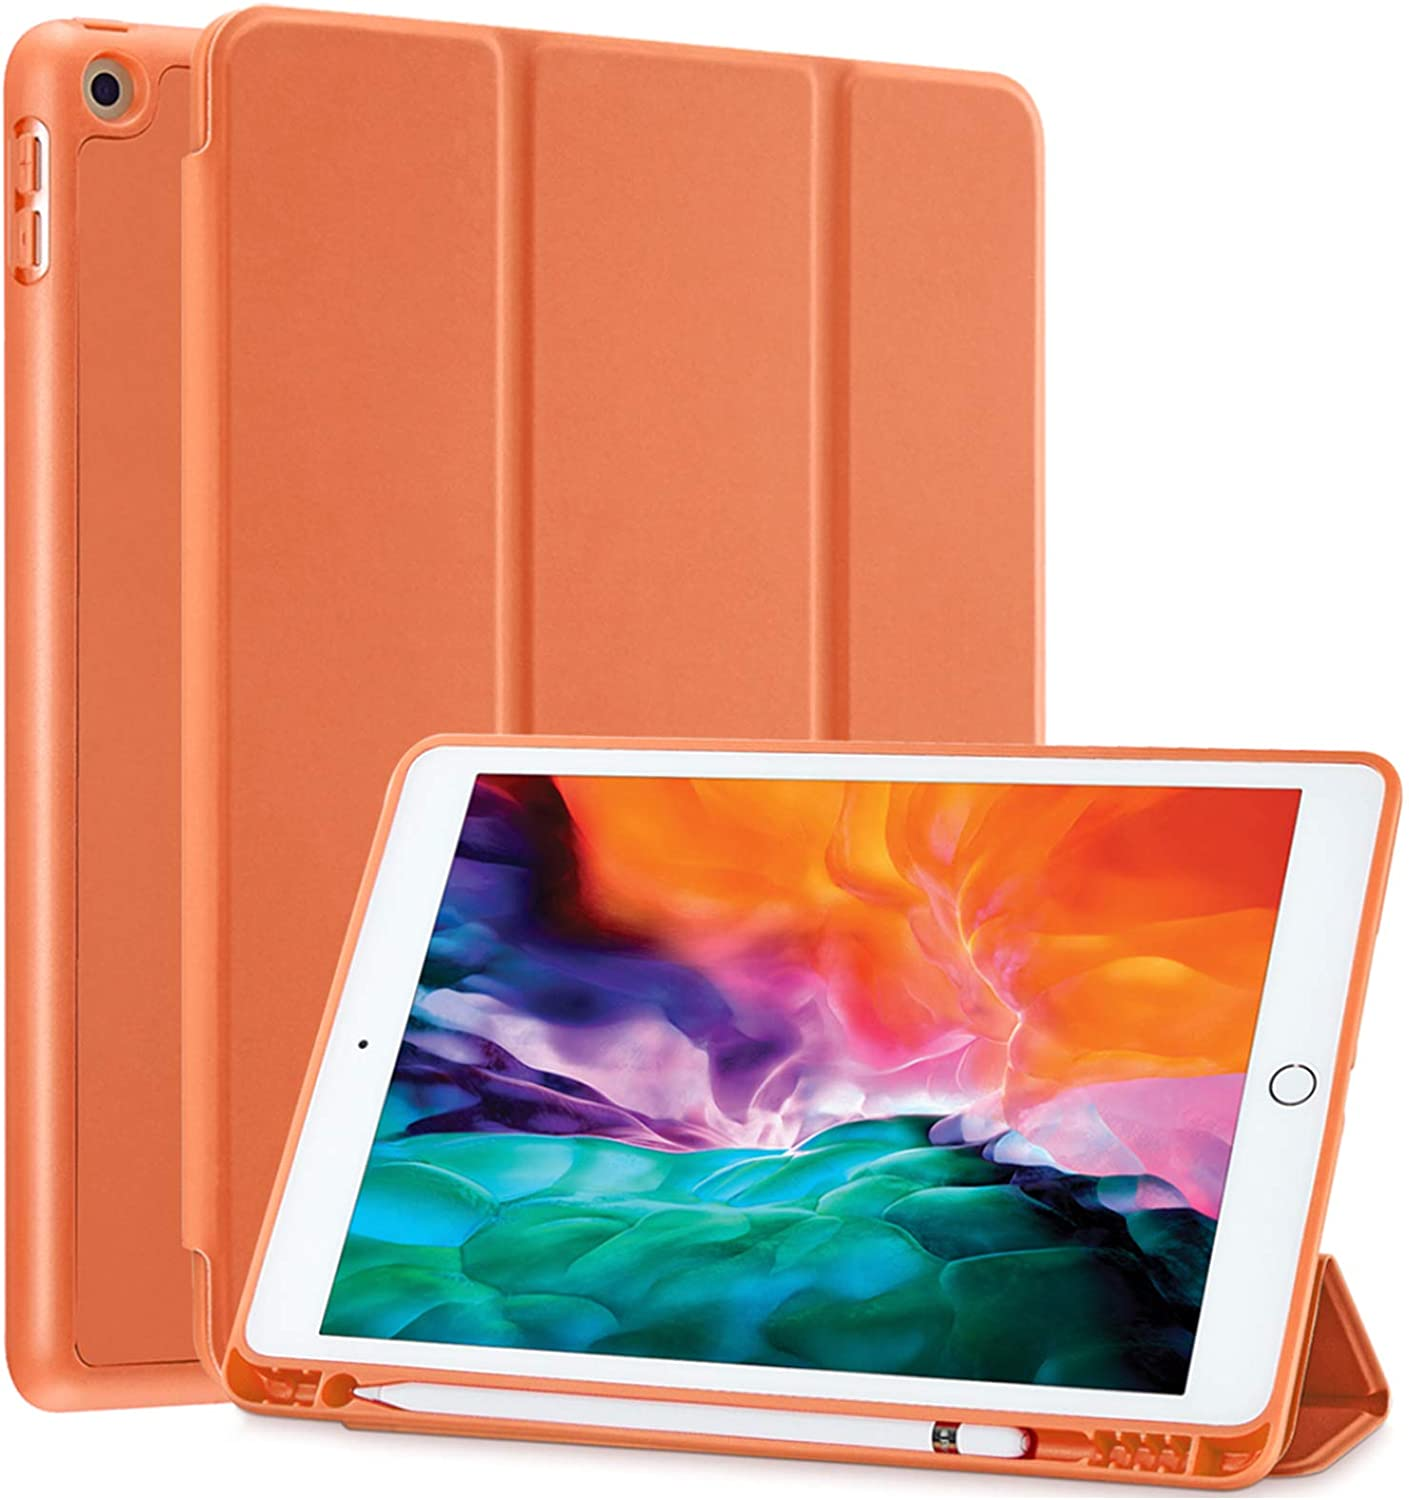 SIWENGDE Compatible for Apple iPad 9.7 Case 2018 iPad 6th Generation Cases/2017 iPad 5th Generation Case with Pencil Holder,Slim Soft Silicone Smart Trifold Stand Protective Cover (Orange)